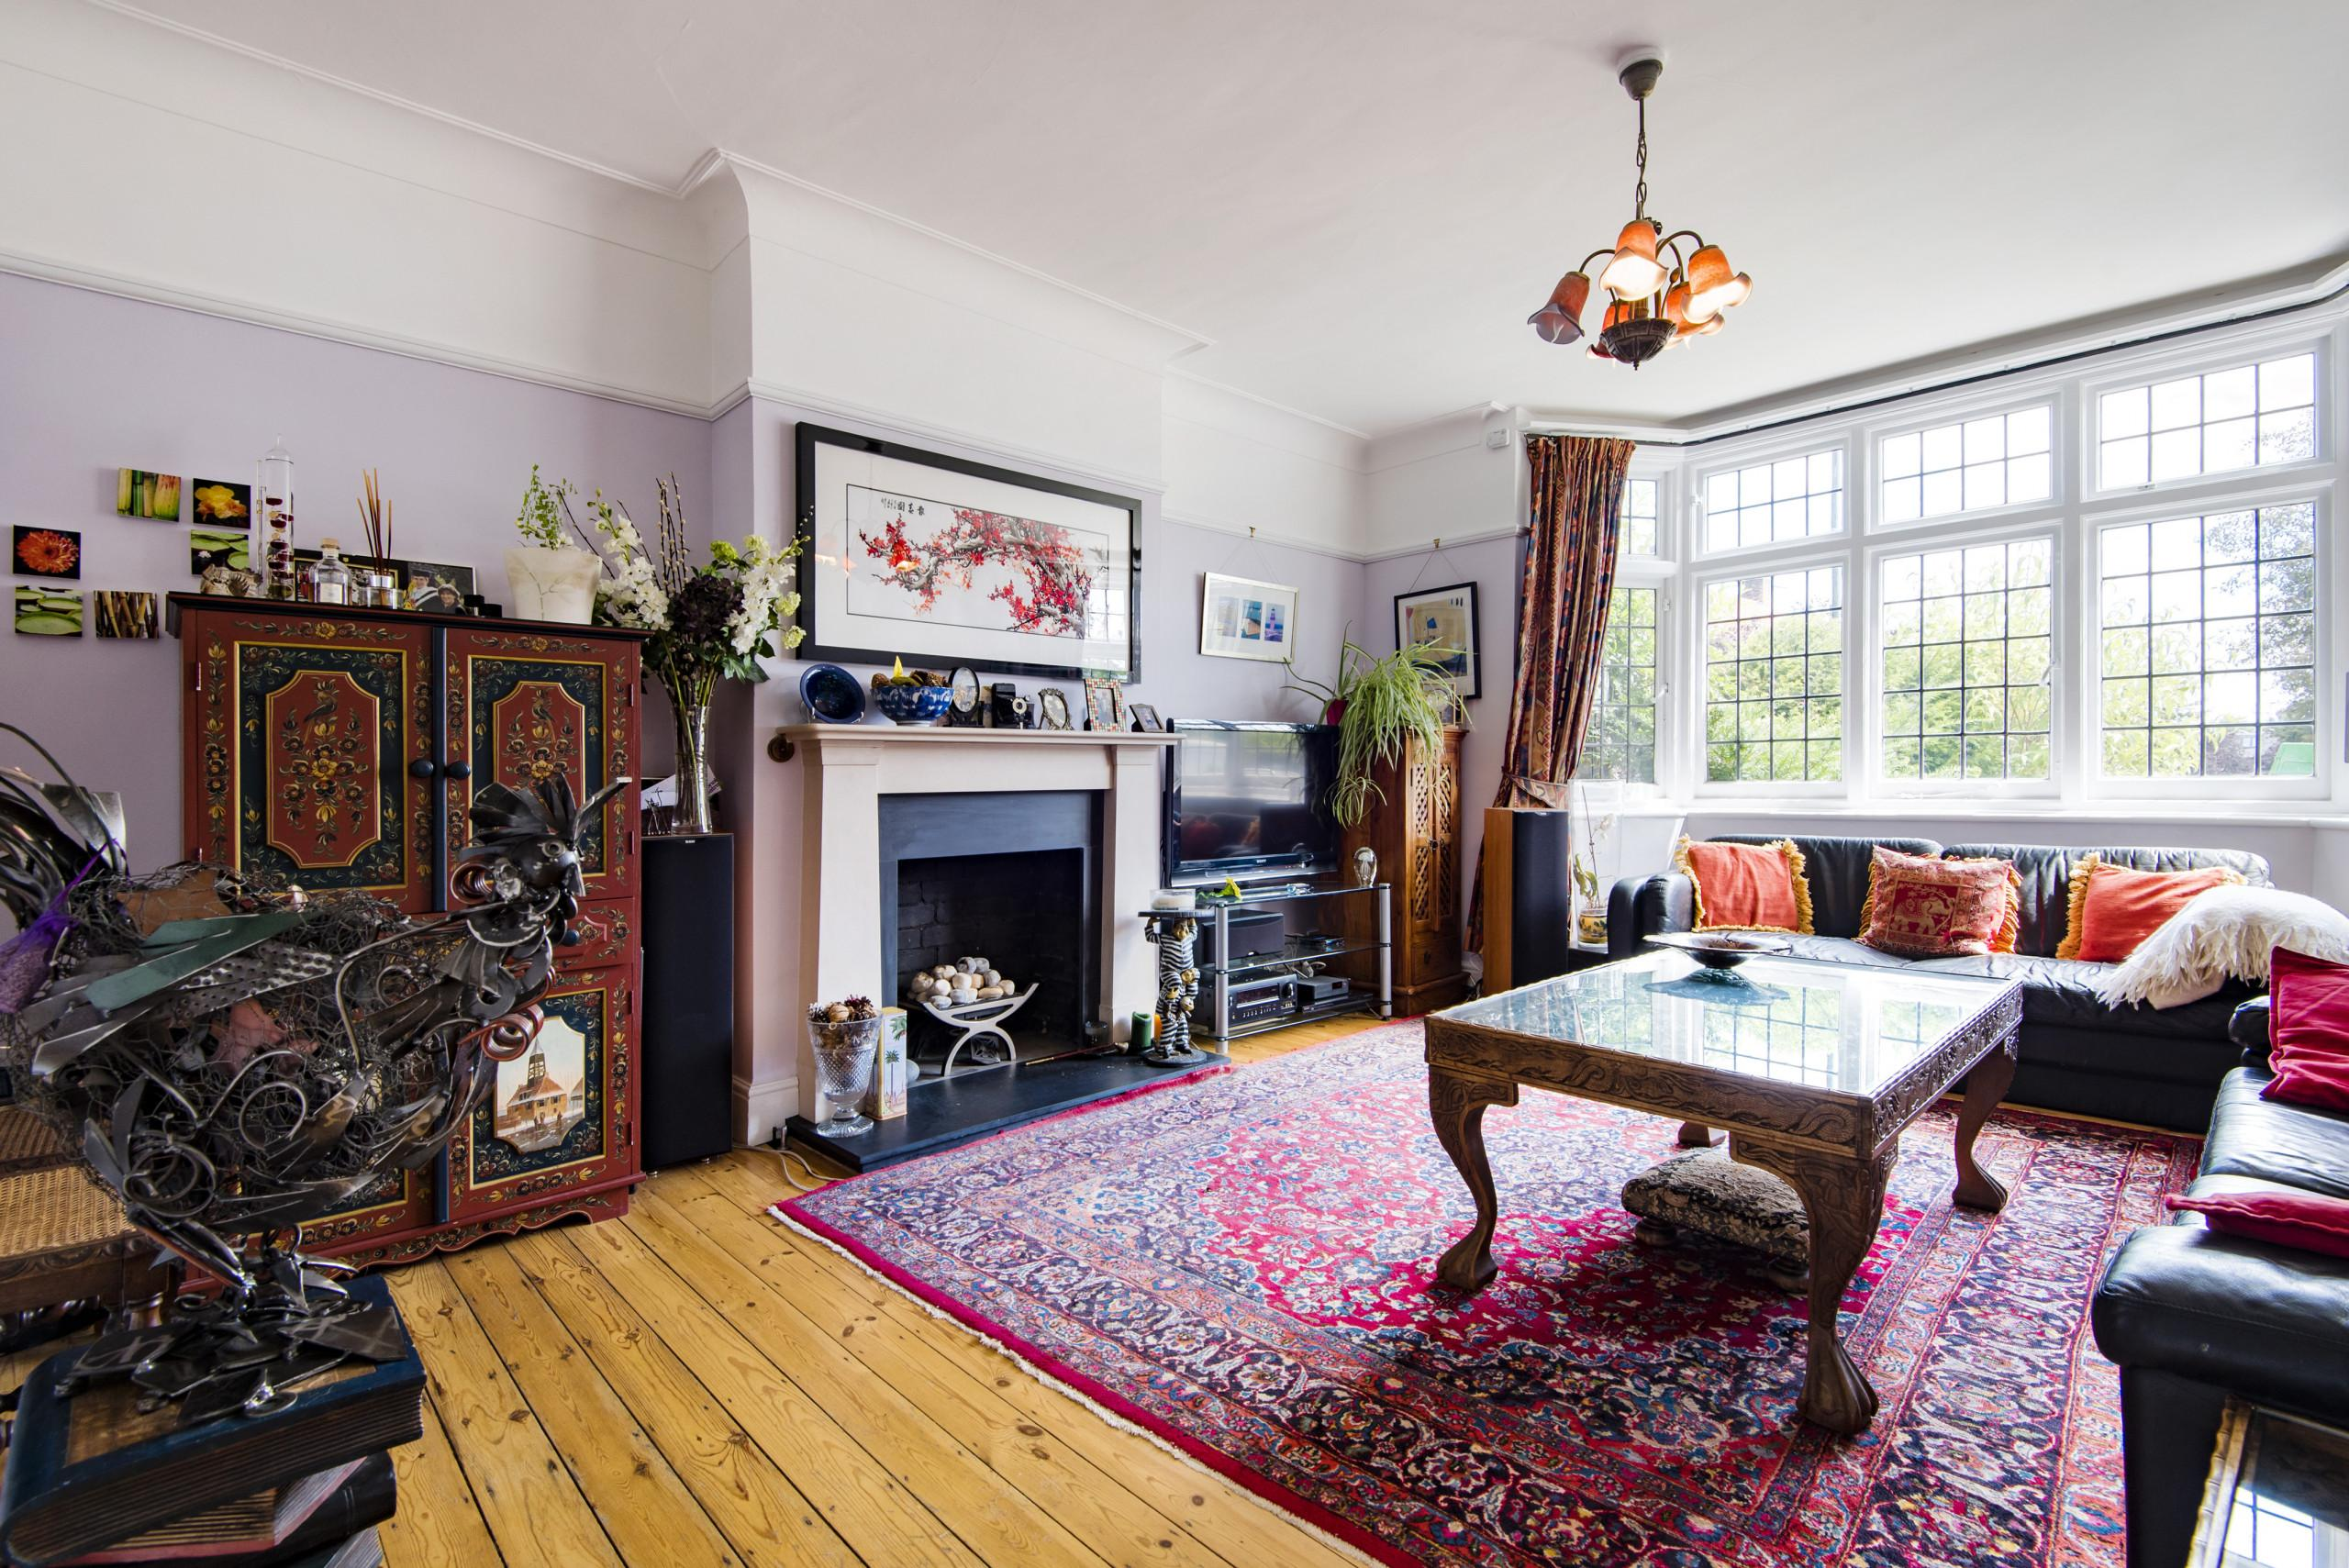 Property Image 1 - Vintage Twickenham Home by the River Thames